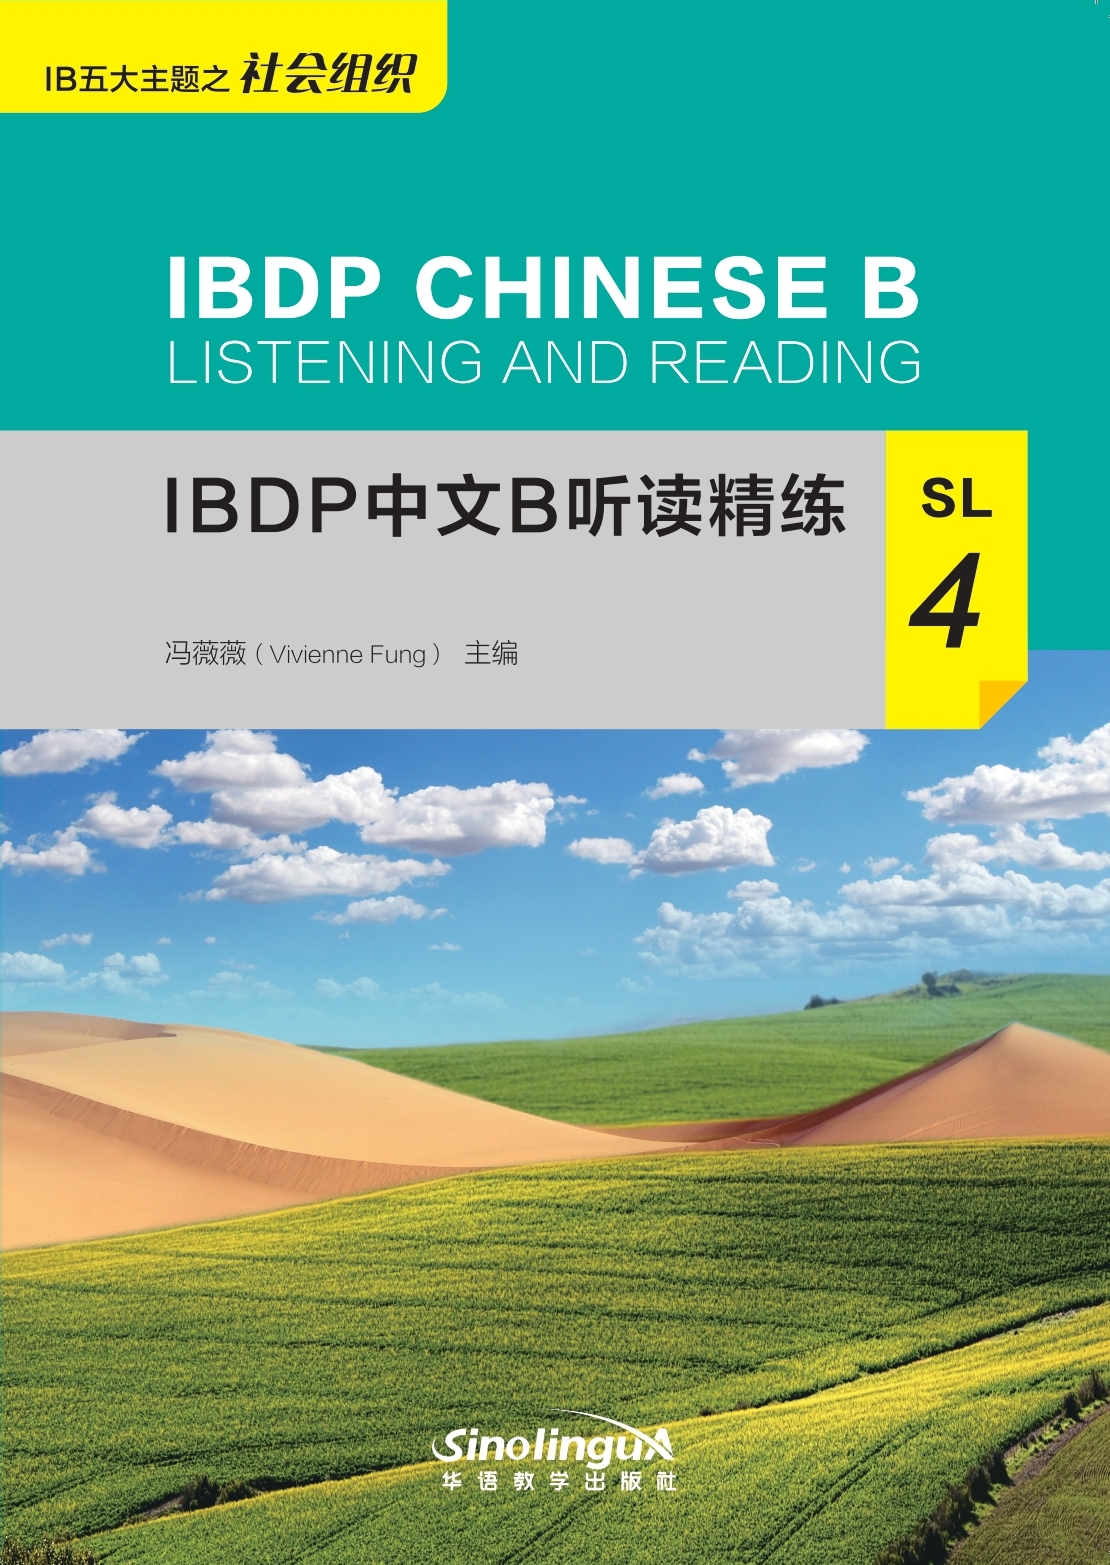 IBDP中文B听读精练SL 4  IBDP Chinese B Listening and Reading SL 4